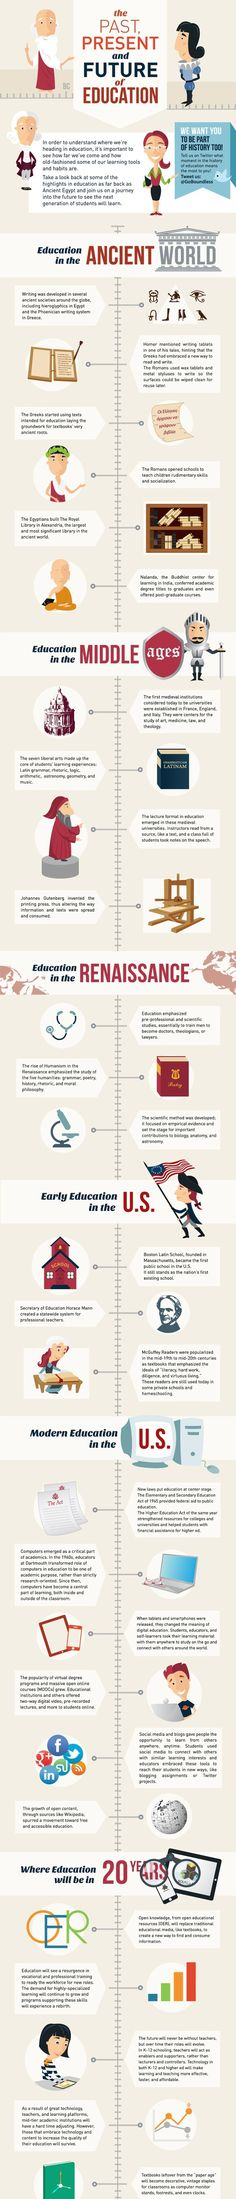 Educational infographic & Data Educational infographic : The History of Education . Image Description Educational infographic : The History of History Education, Teaching History, Early Education, Teaching Tools, Higher Education, Teacher Resources, Steam Education, Education System, Instructional Design